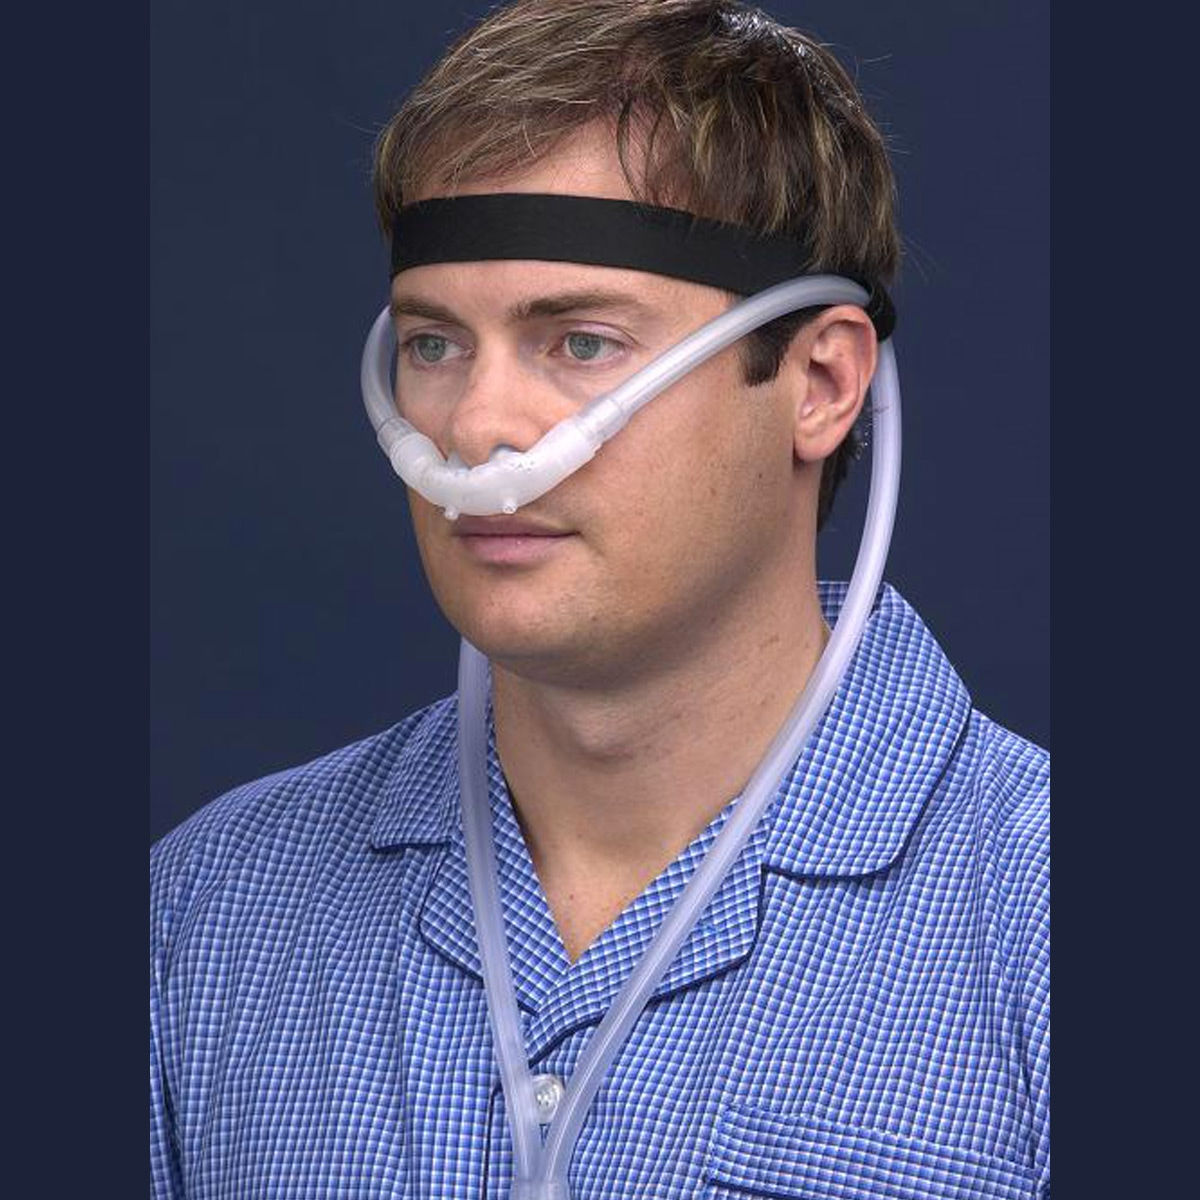 Nasal-Aire II Cannula Style CPAP/BiPAP Mask with Headgear